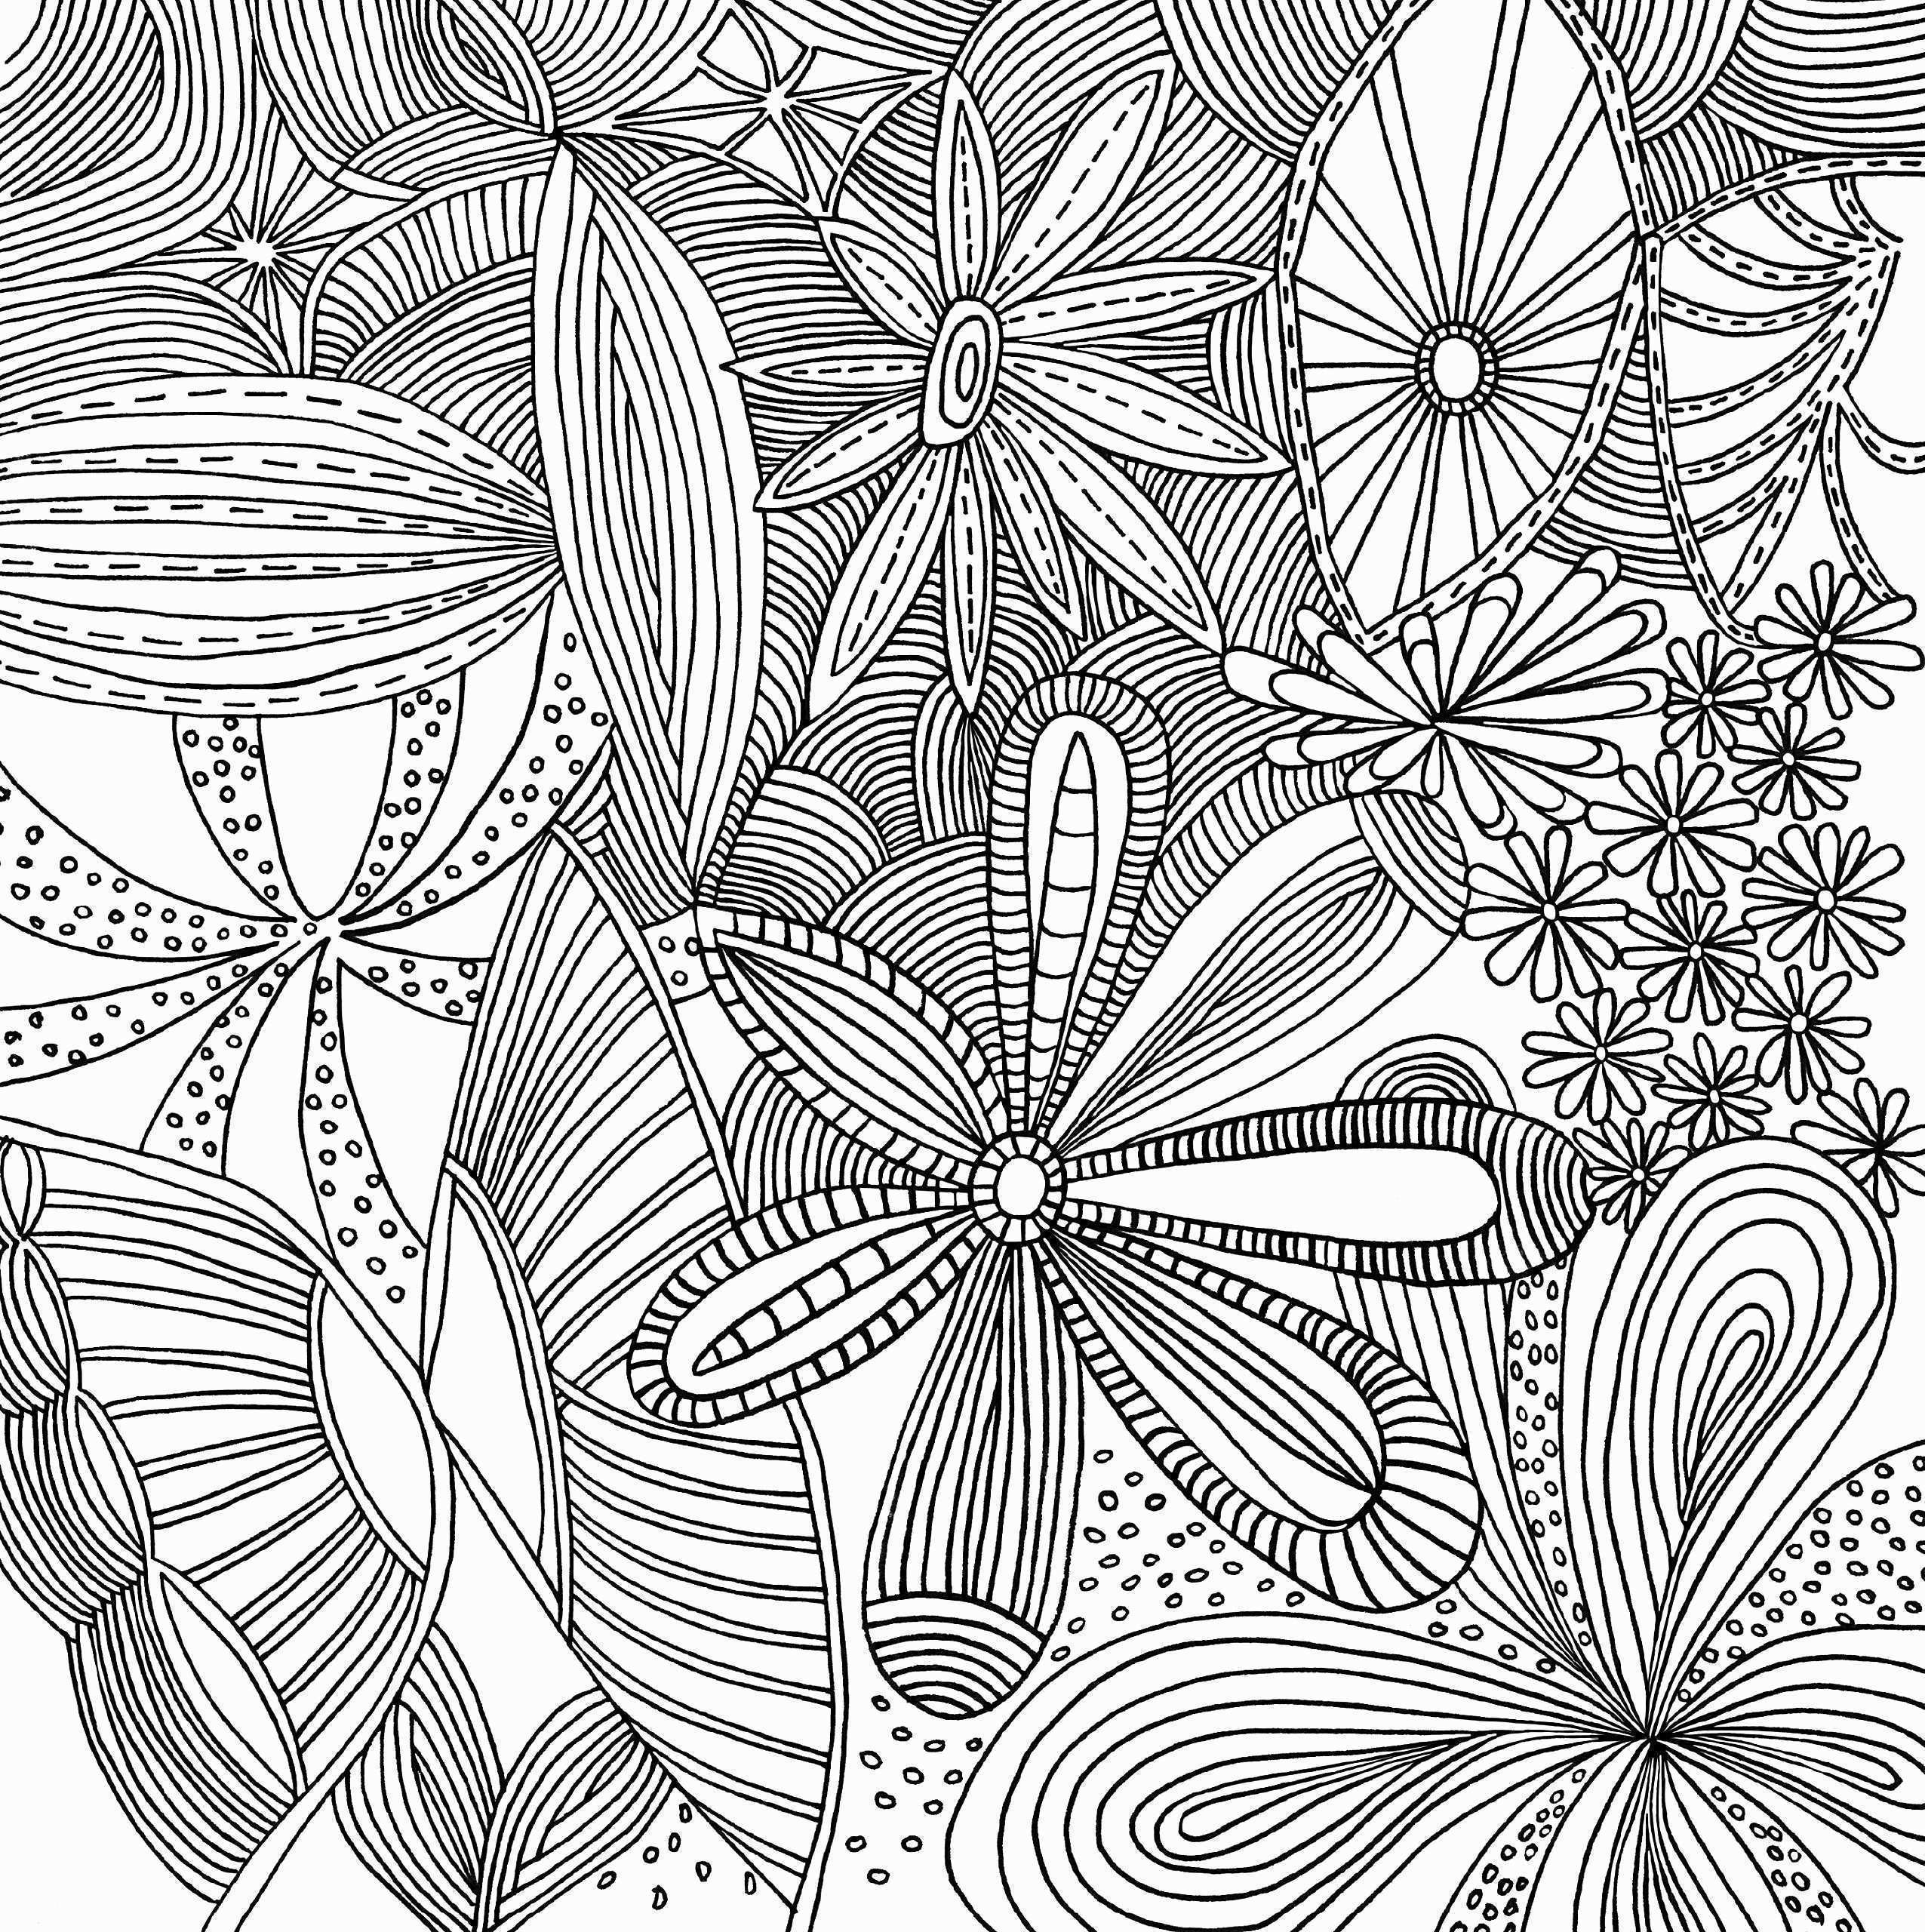 13 Children Coloring Books